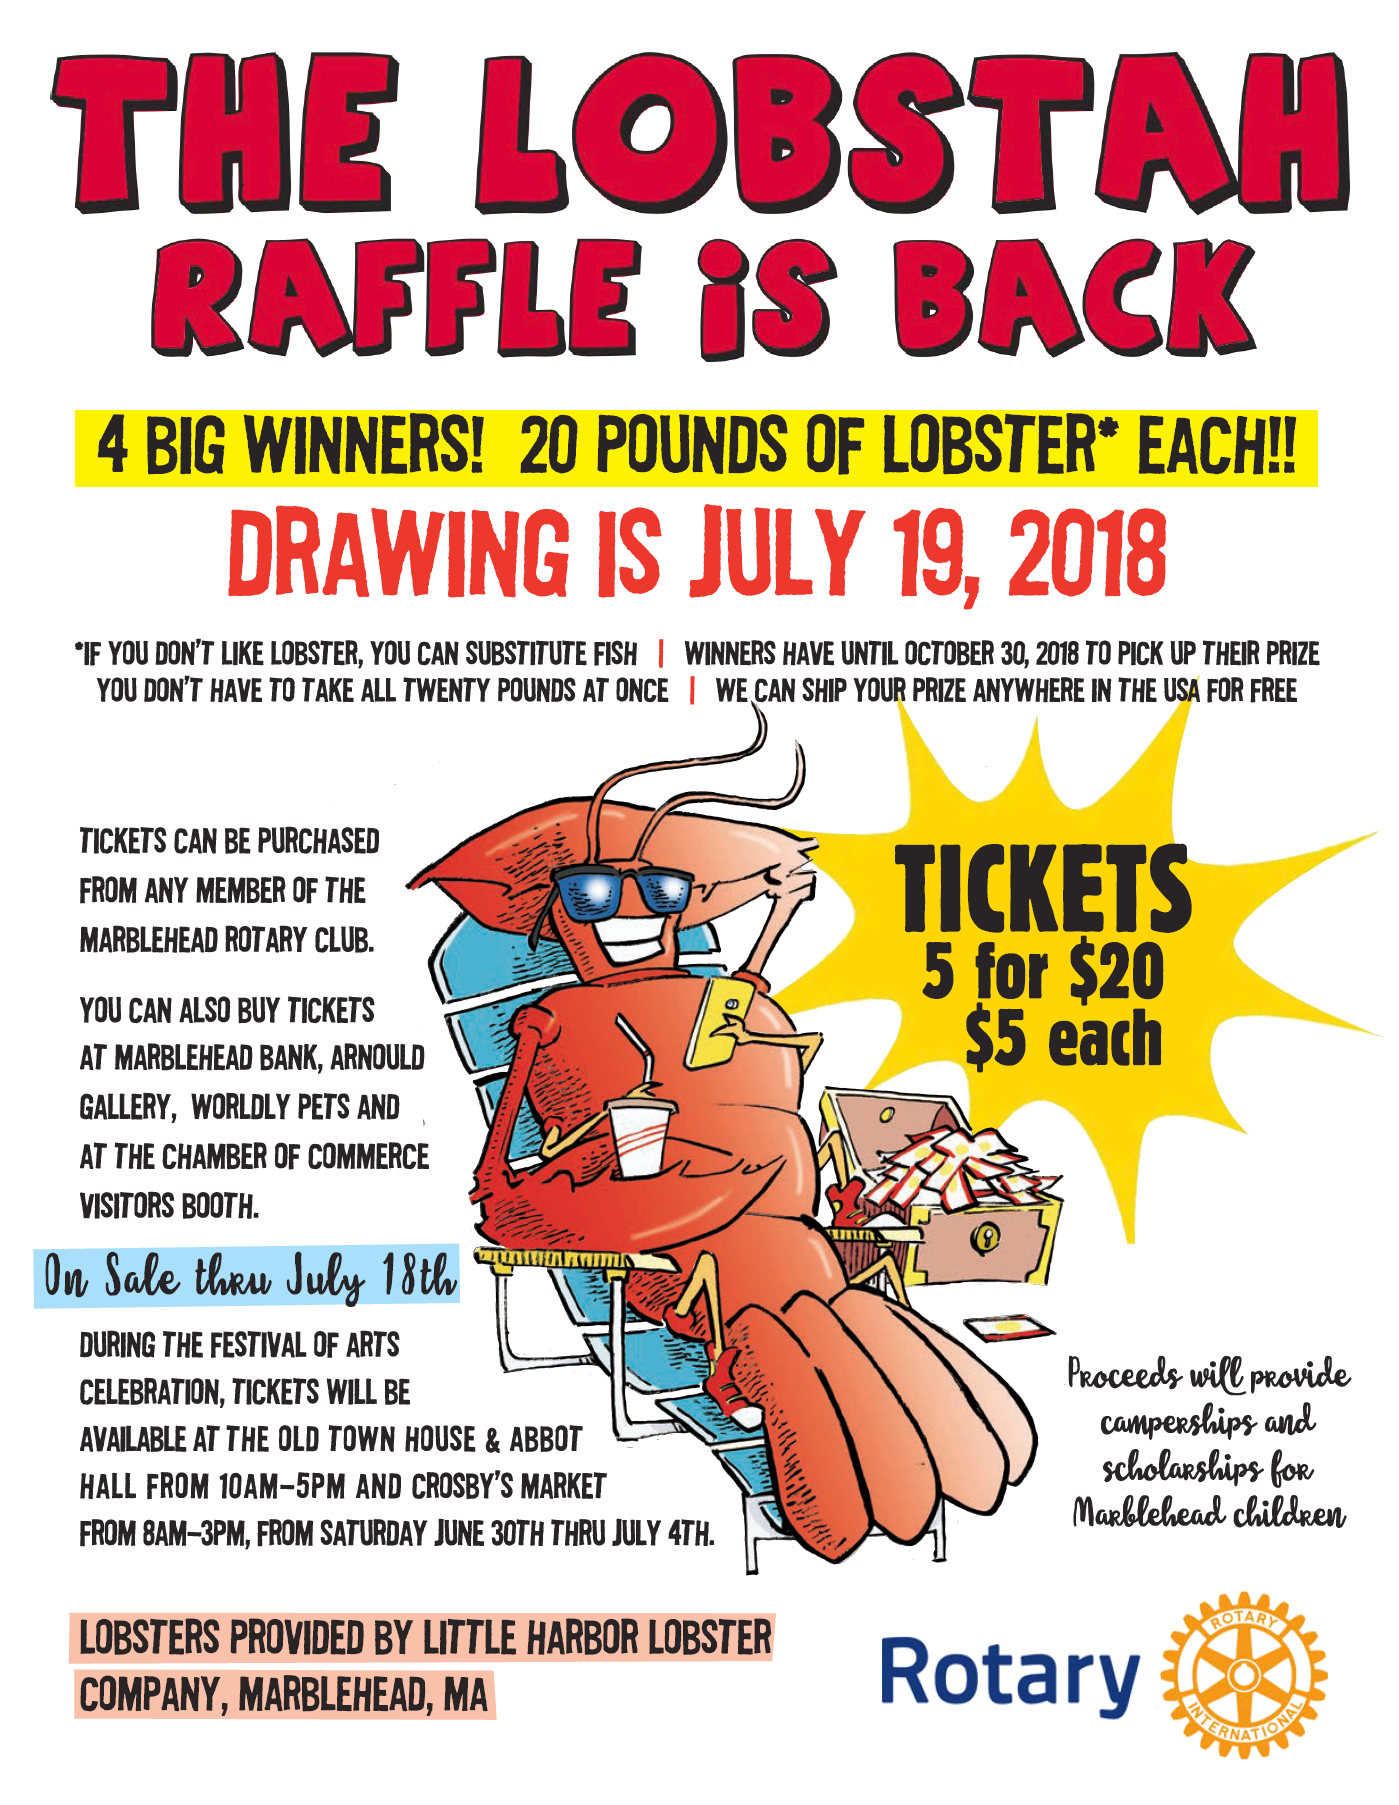 The Lobstah Raffle Is Back